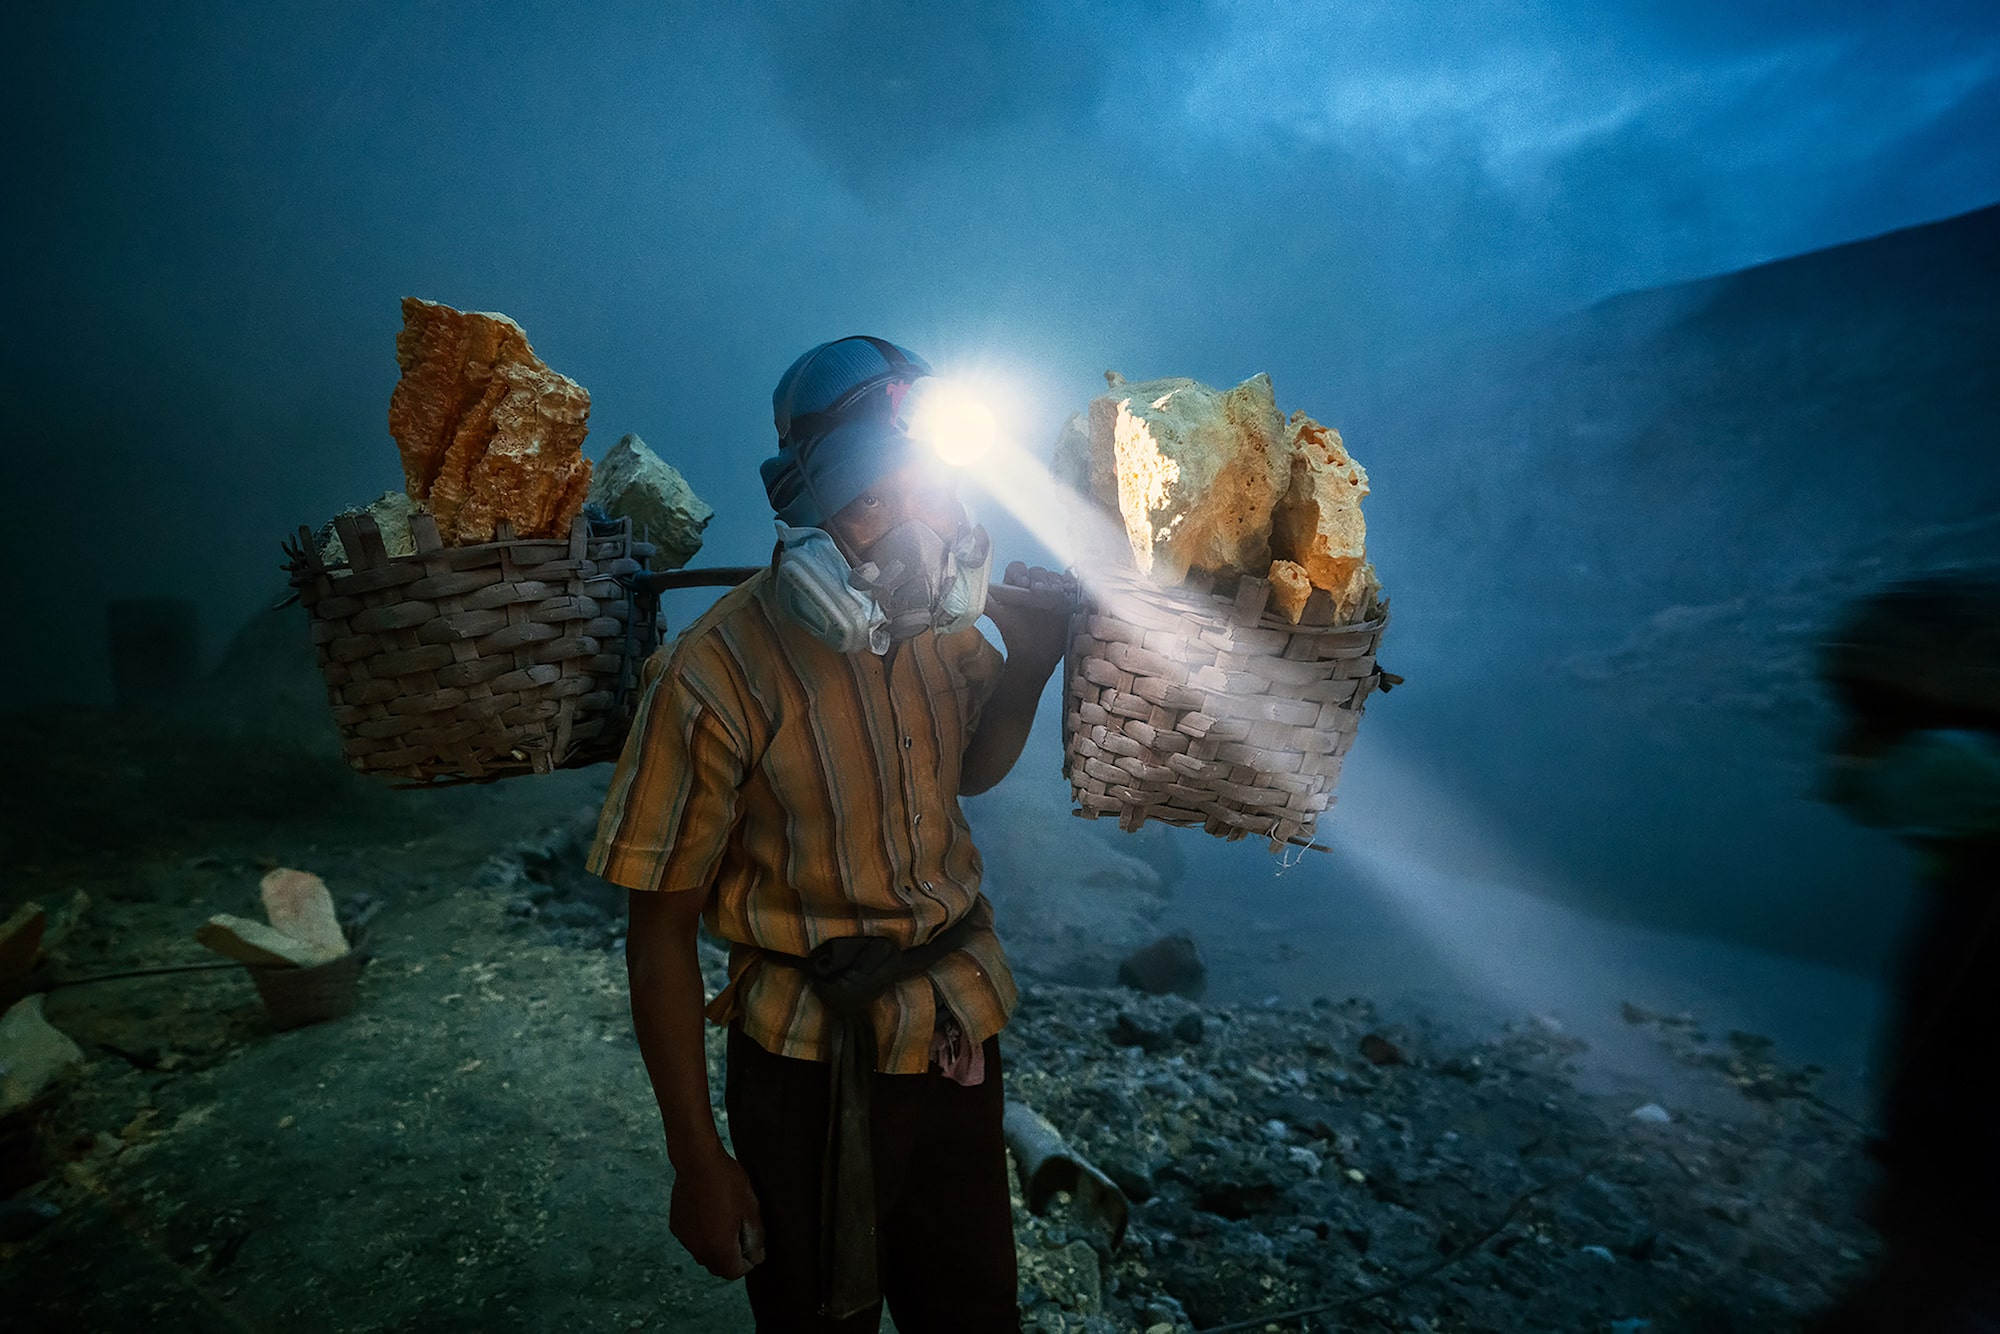 andrea frazzetta sony alpha 7RII miner with headtorch carries 2 baskets of sulphur rocks